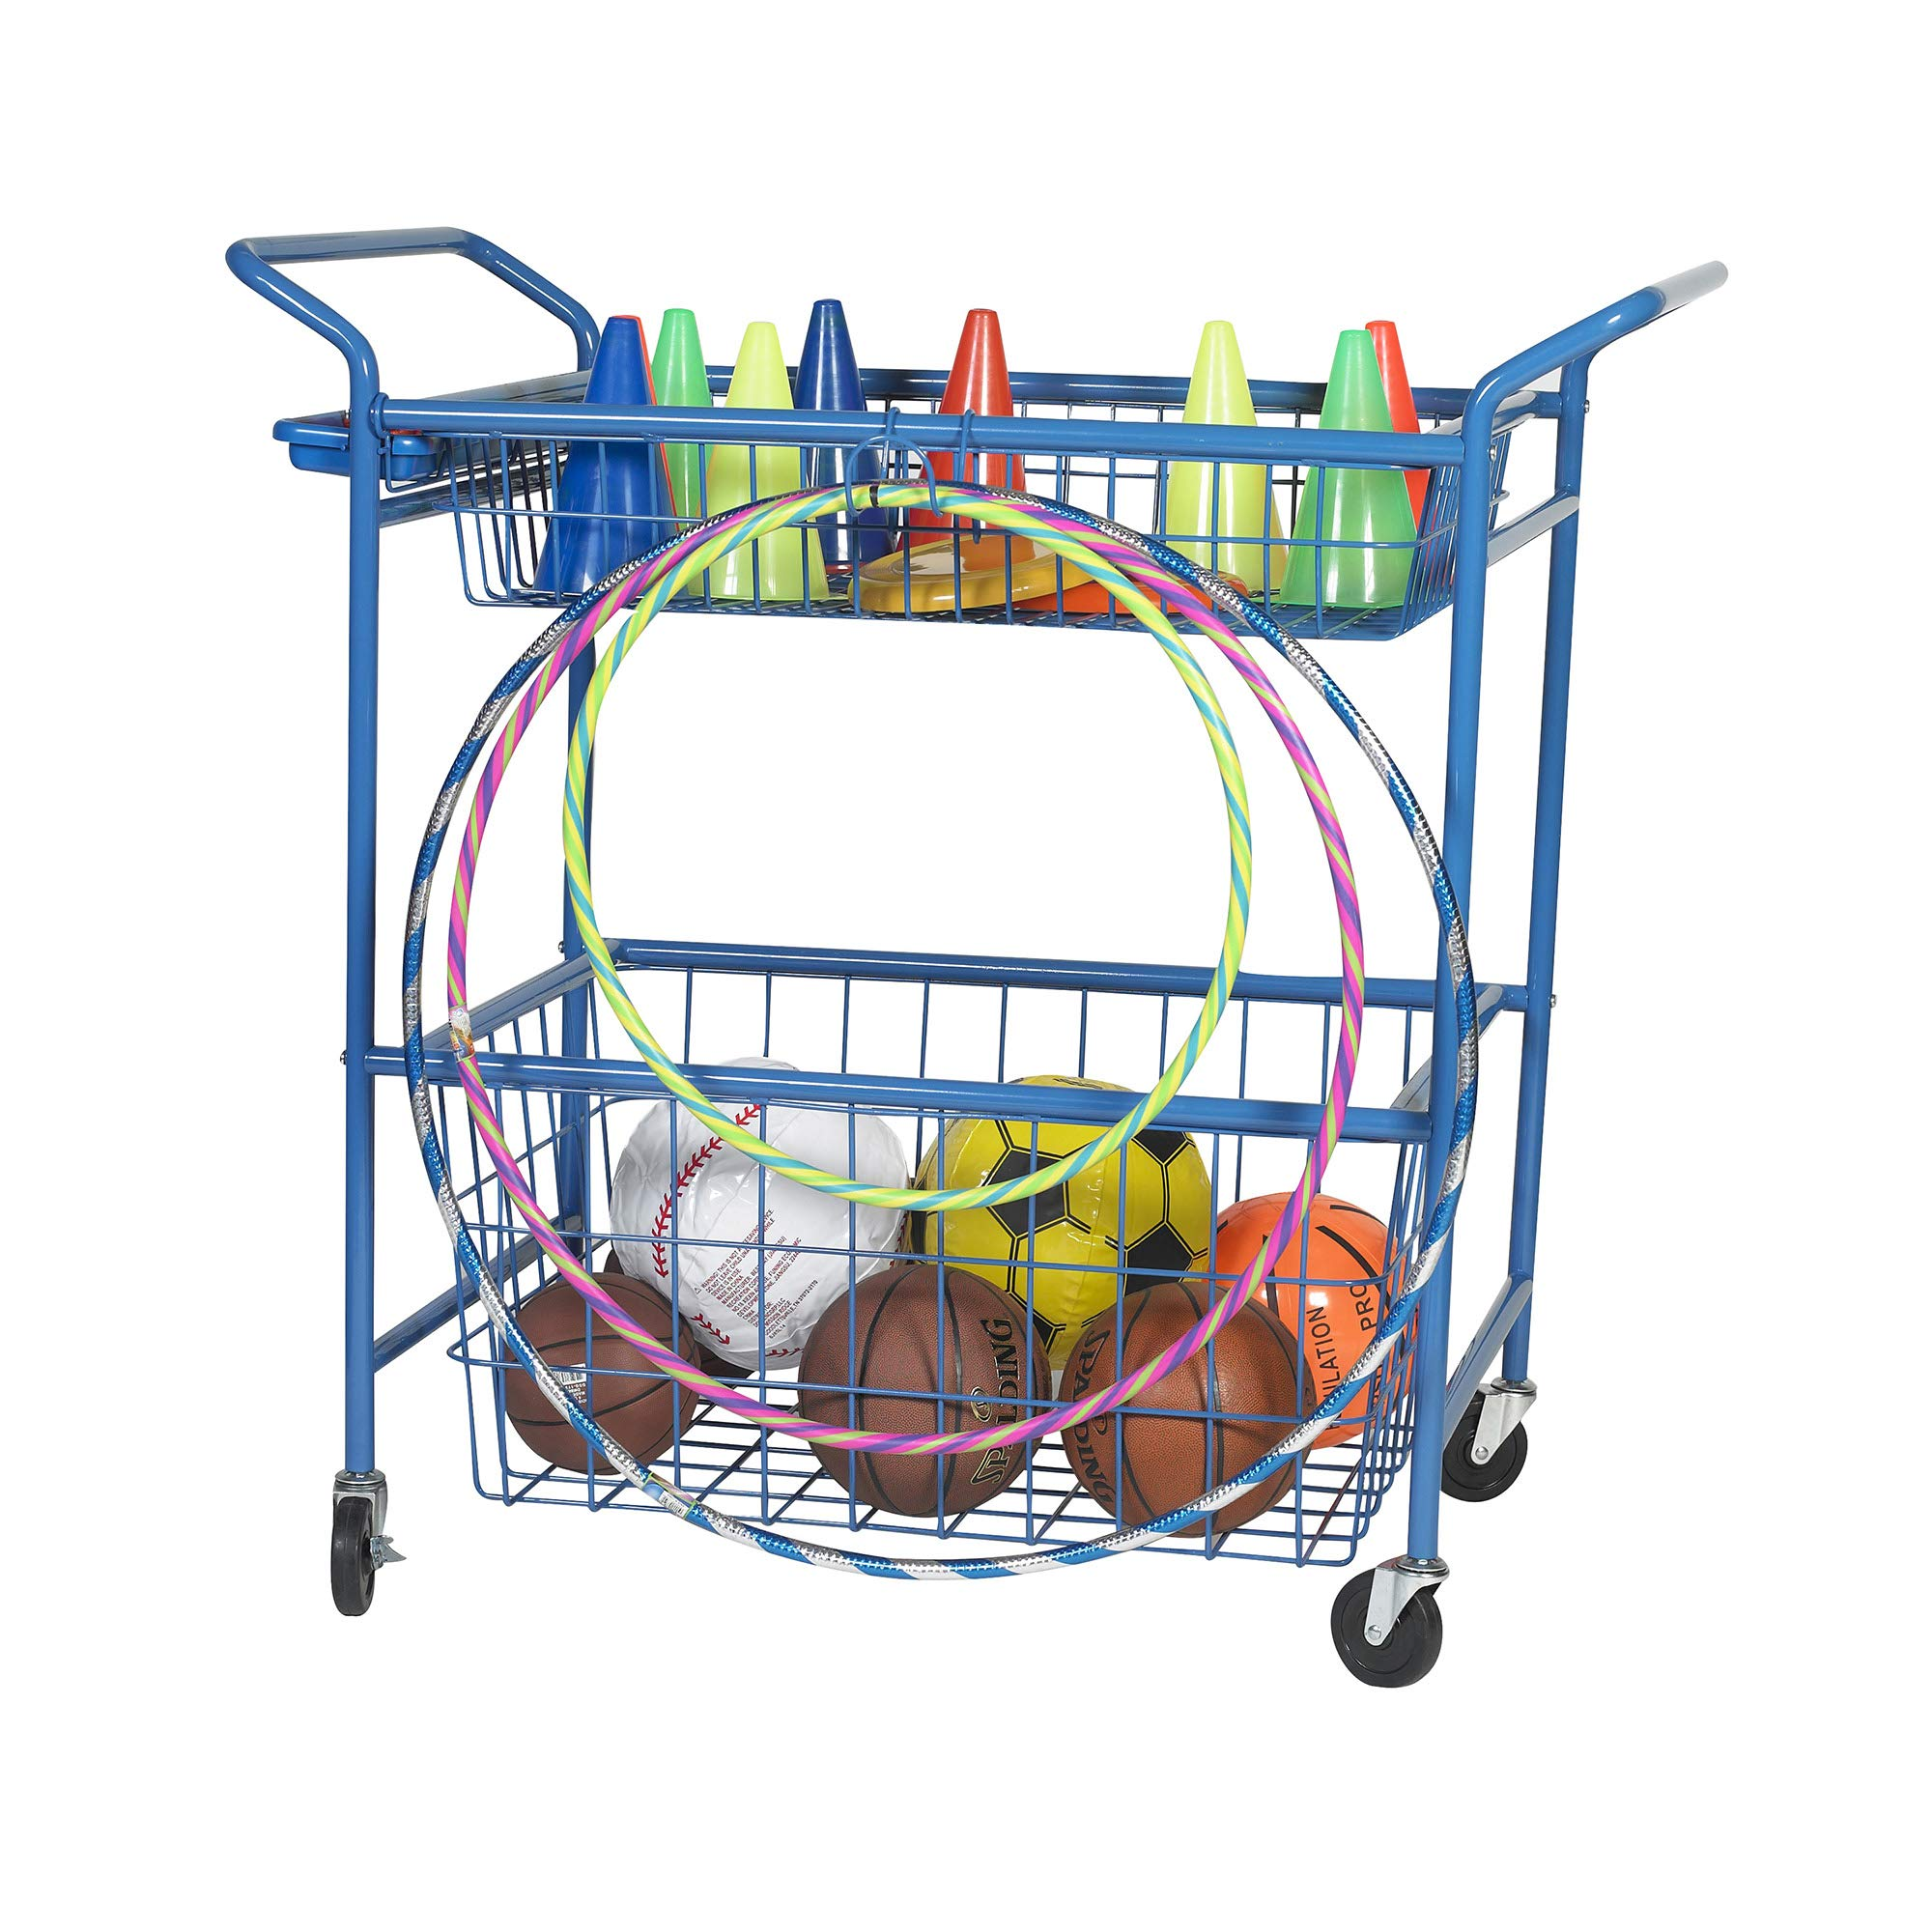 Angeles Classroom Essentials Activity Cart, Blue - 46'' by 26'' by 45'' - Constructed of Sturdy Steel for Storage of Large or Small Items, a Convenient Hook and Handlebar Tray -Easy to Roll on 4 Casters by Angeles